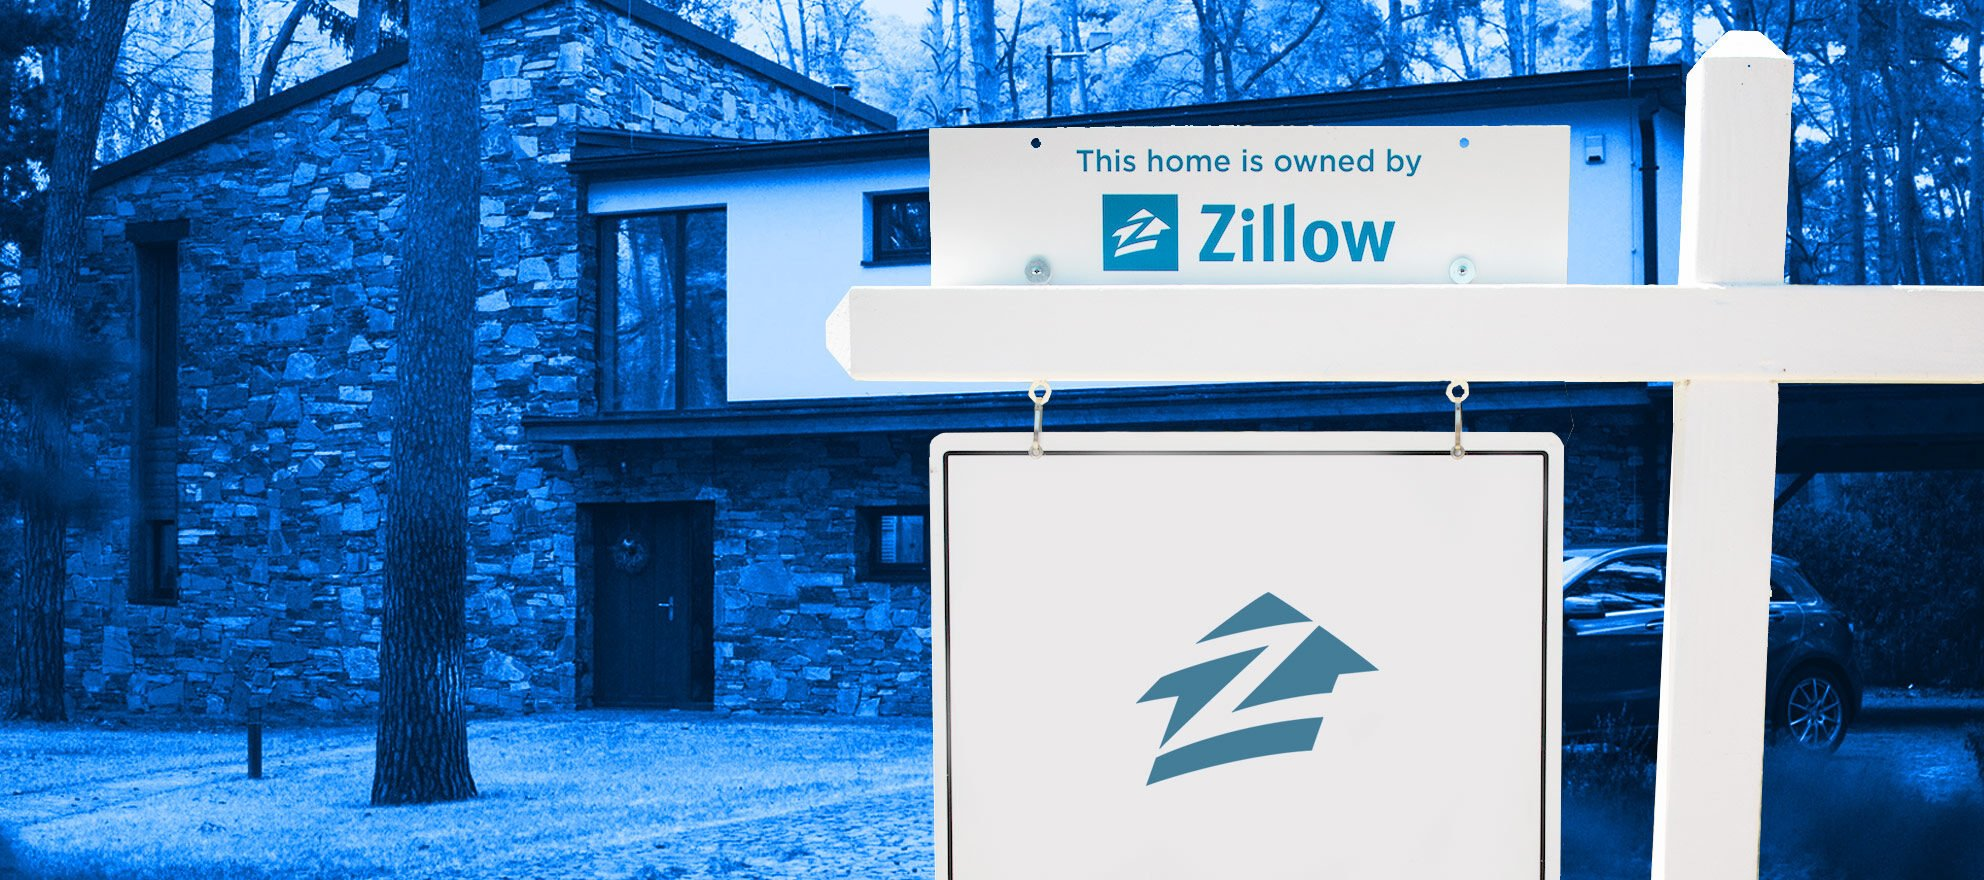 Zillow is still losing money on every home it sells – but not as much as it was 6 months ago